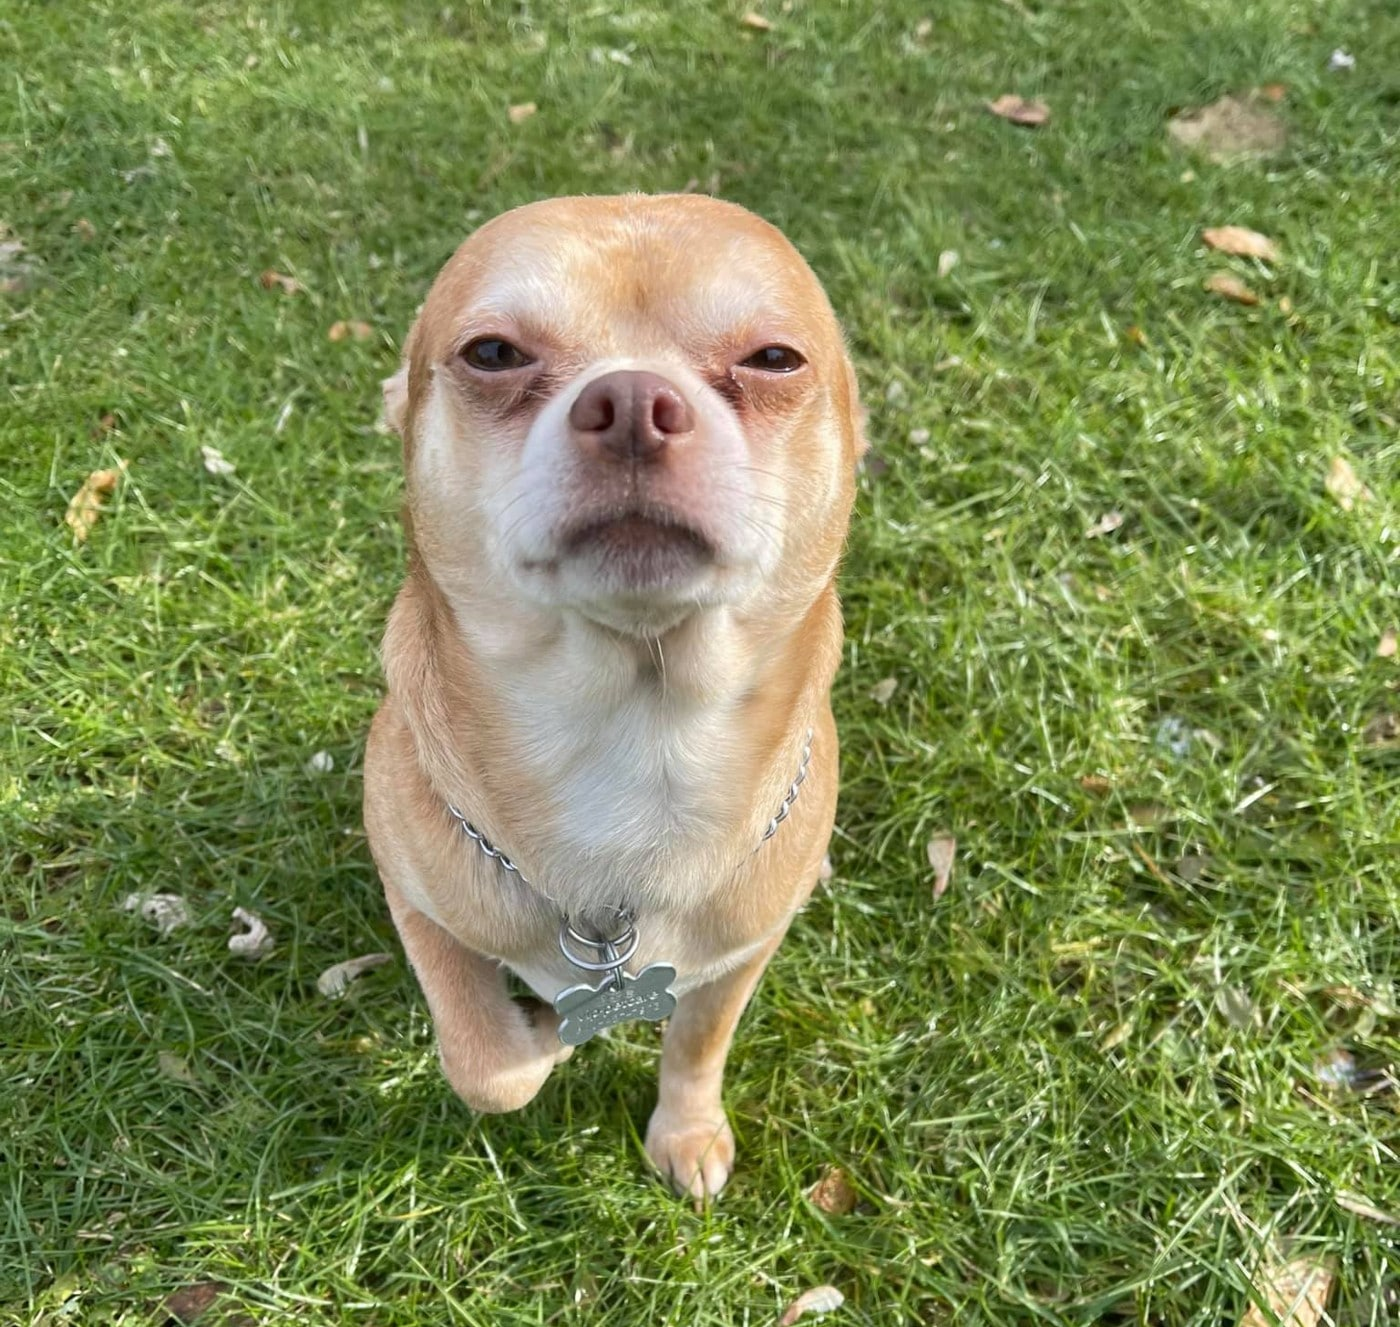 Brutally Honest Adoption Bio Goes Viral for 'Demonic Chihuahua Hellscape' Who Hates Everyone